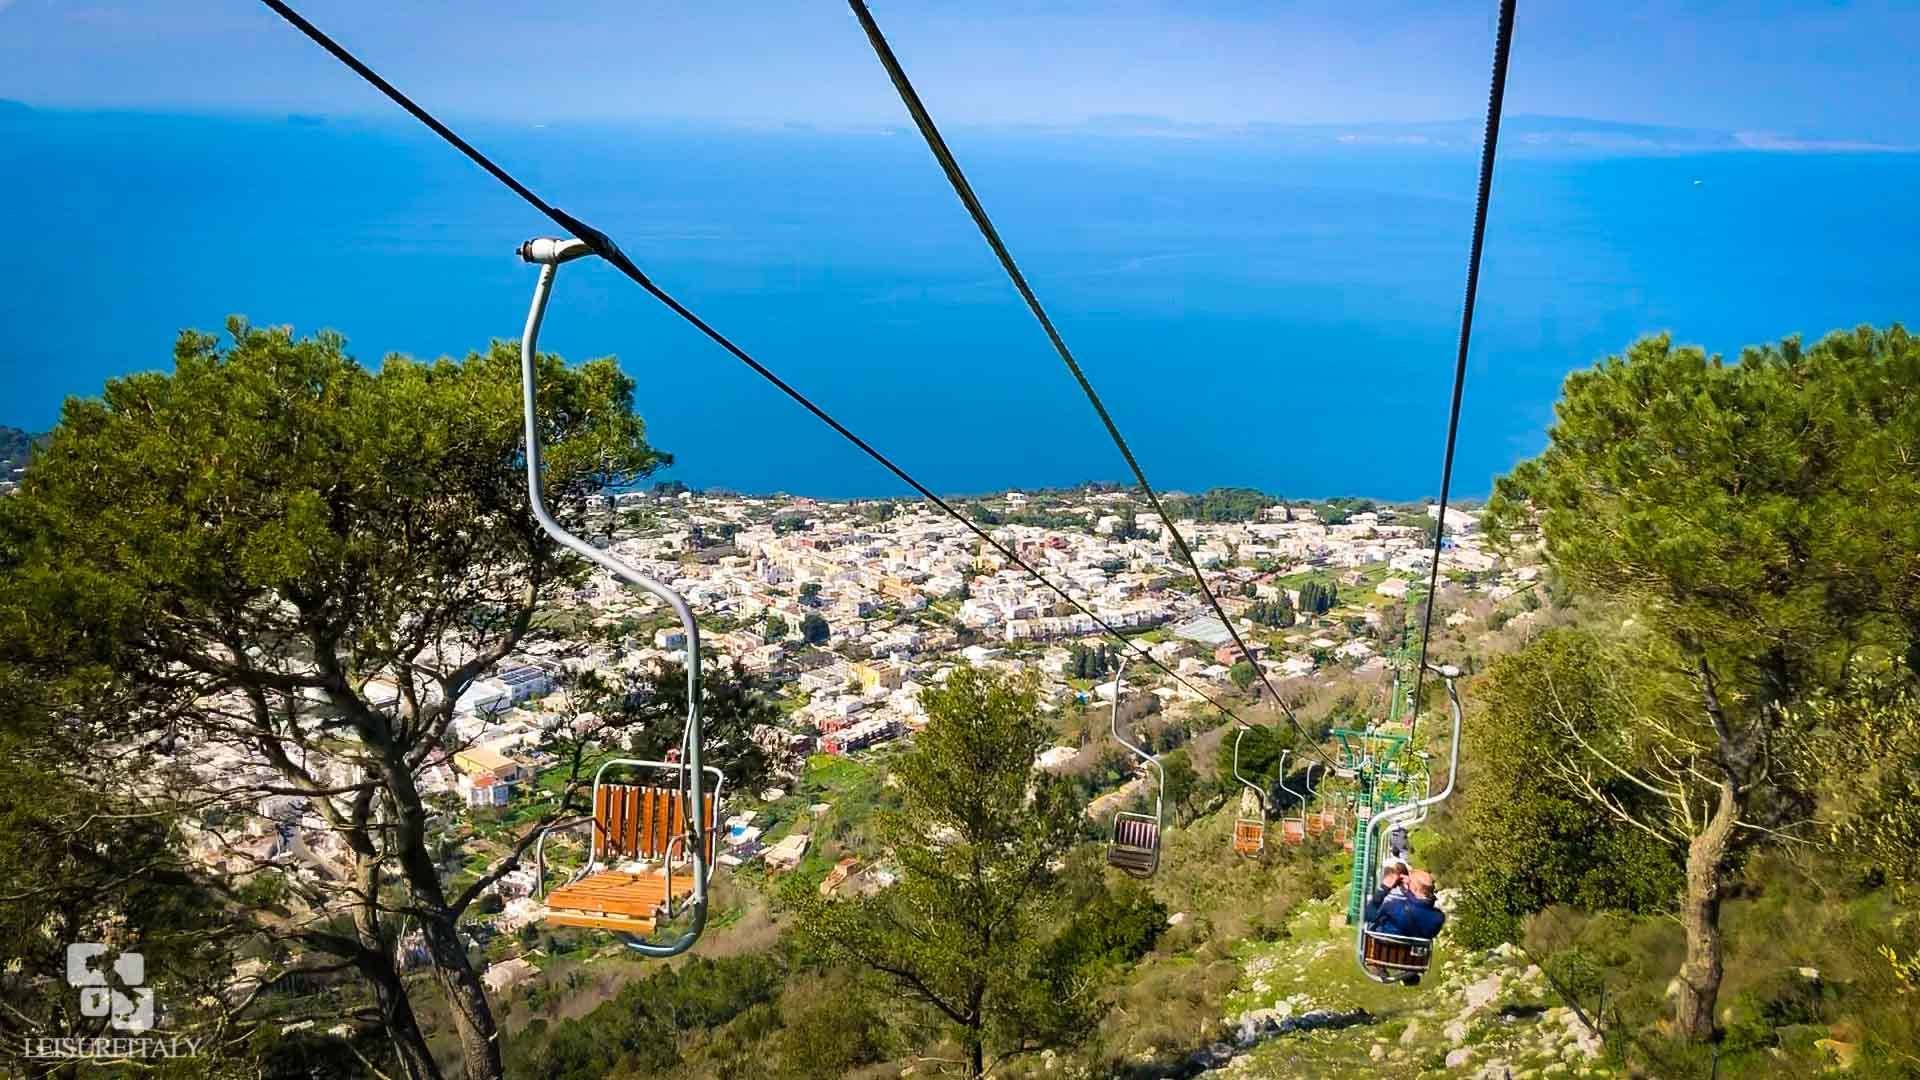 Capri Travel Tips Chairlift